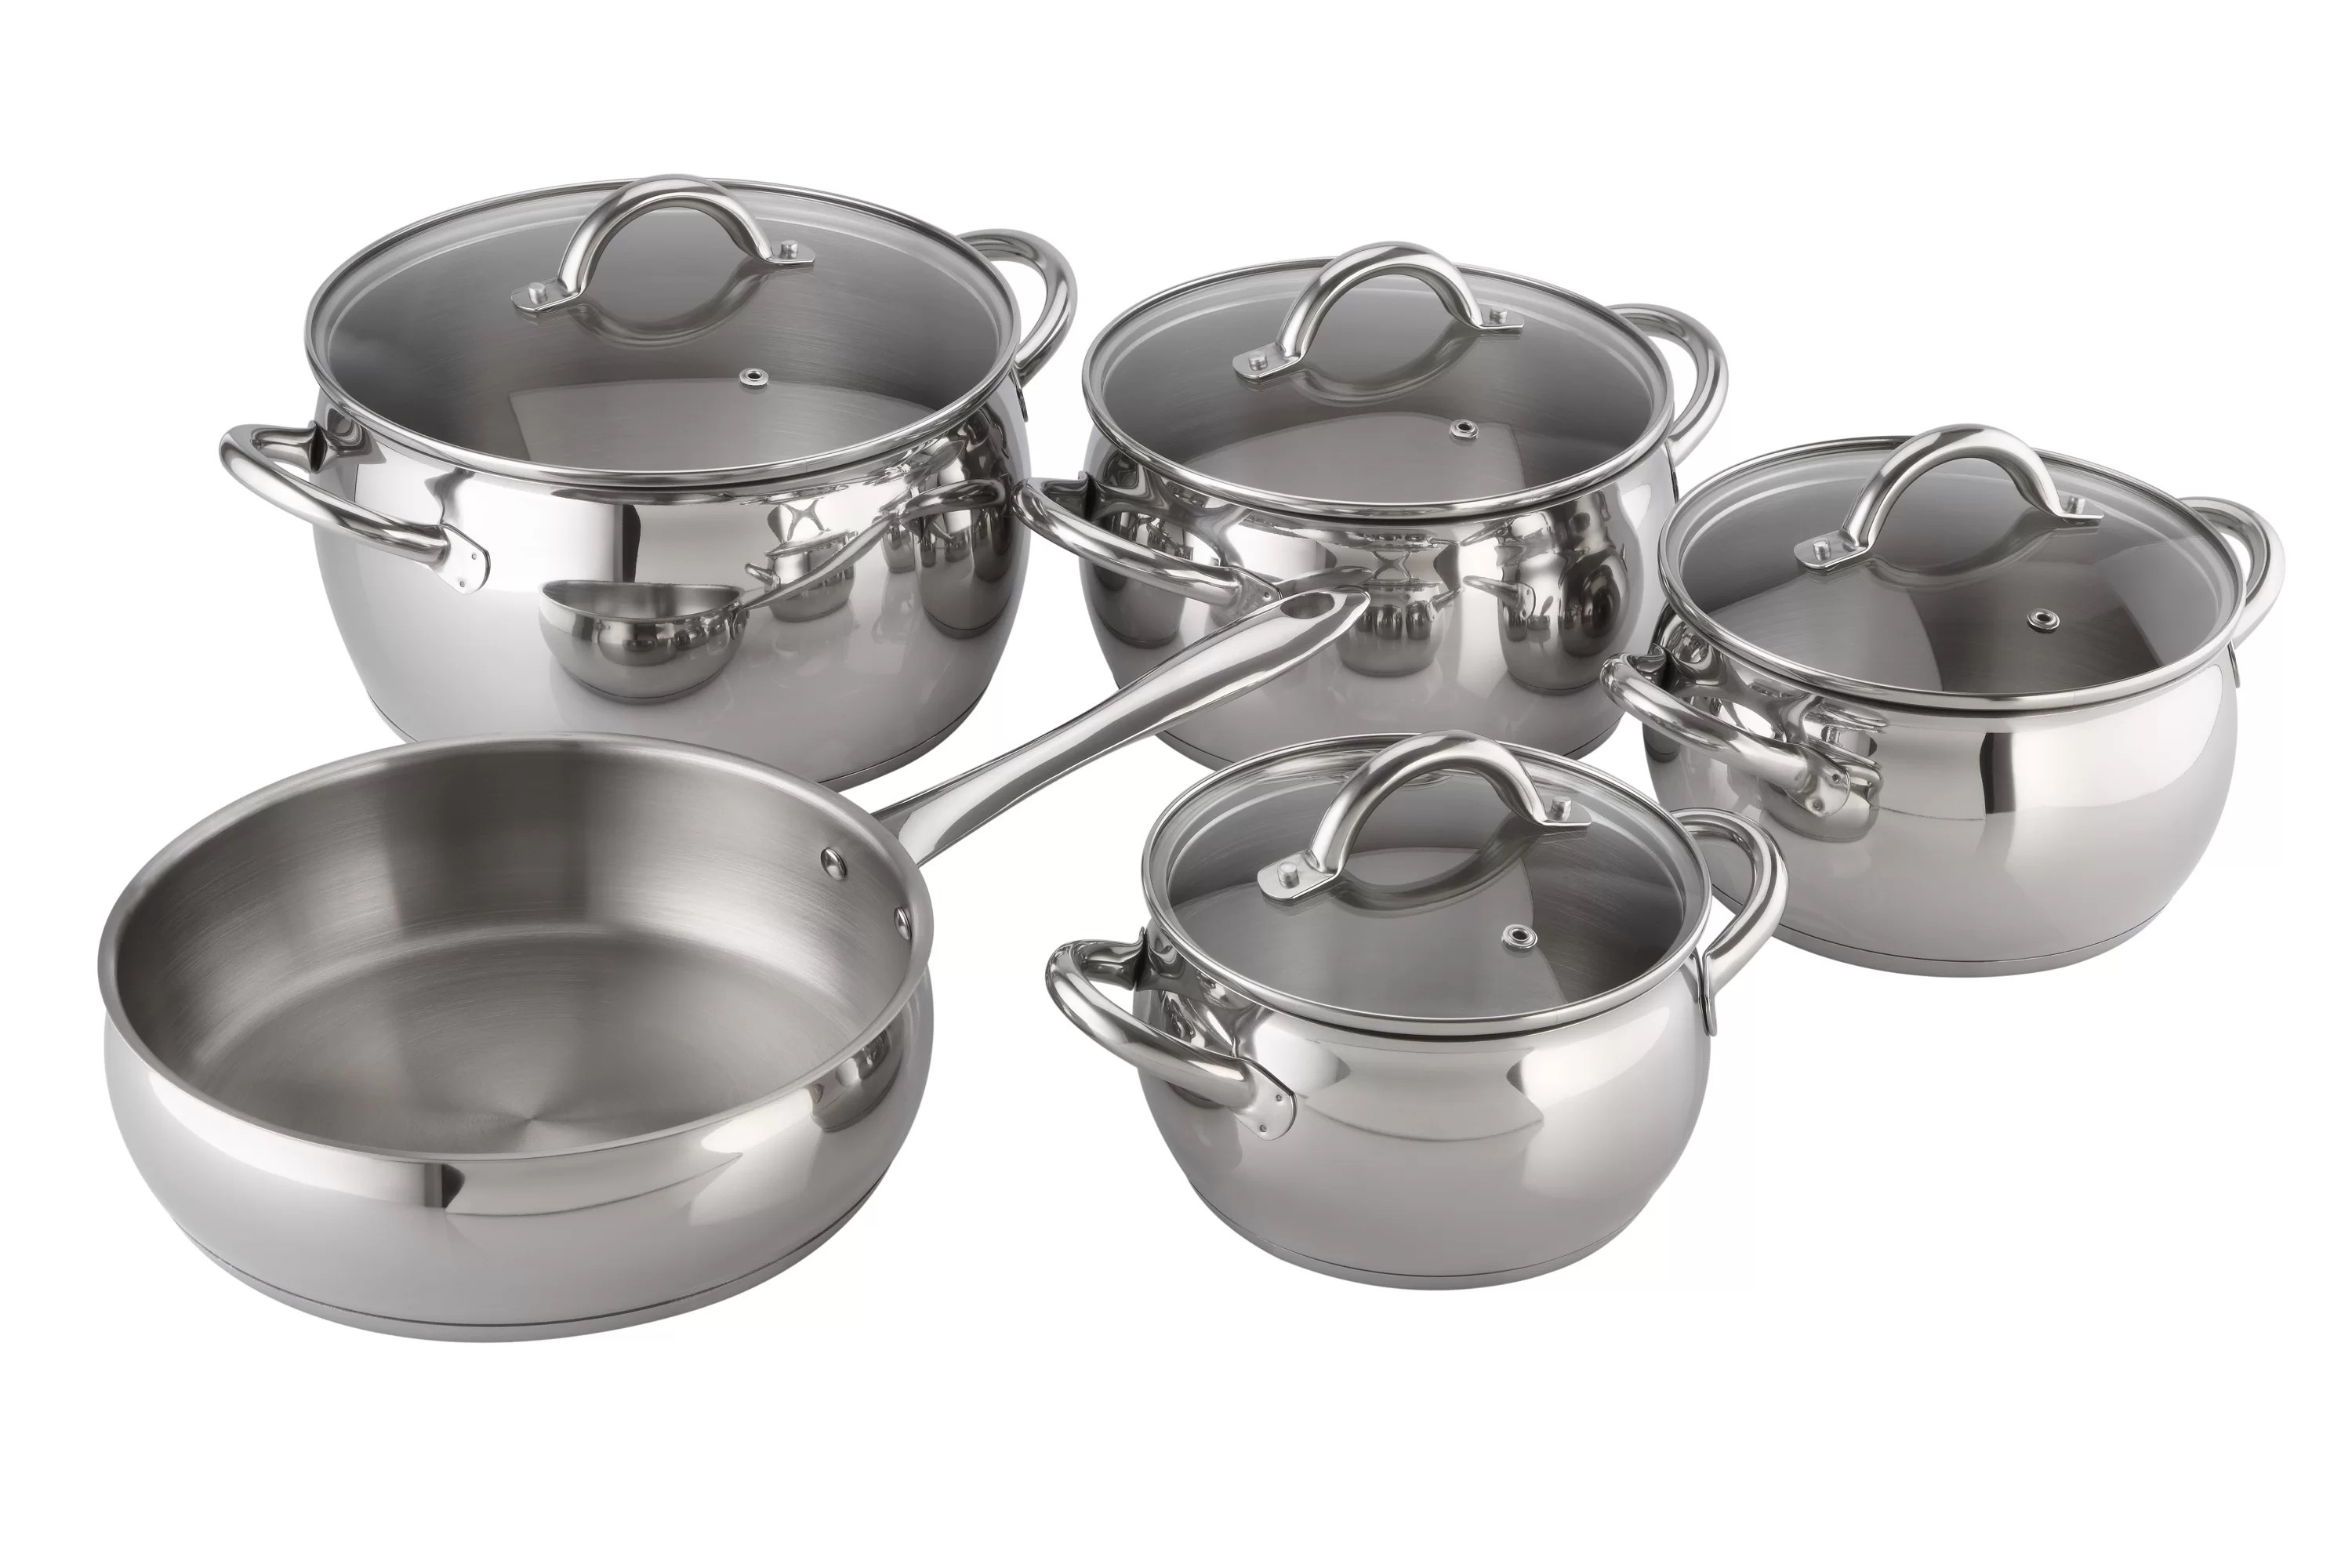 Kuche Top Mount Bar Fridge Kuchen Stainless Steel 9 Piece Cookware Set